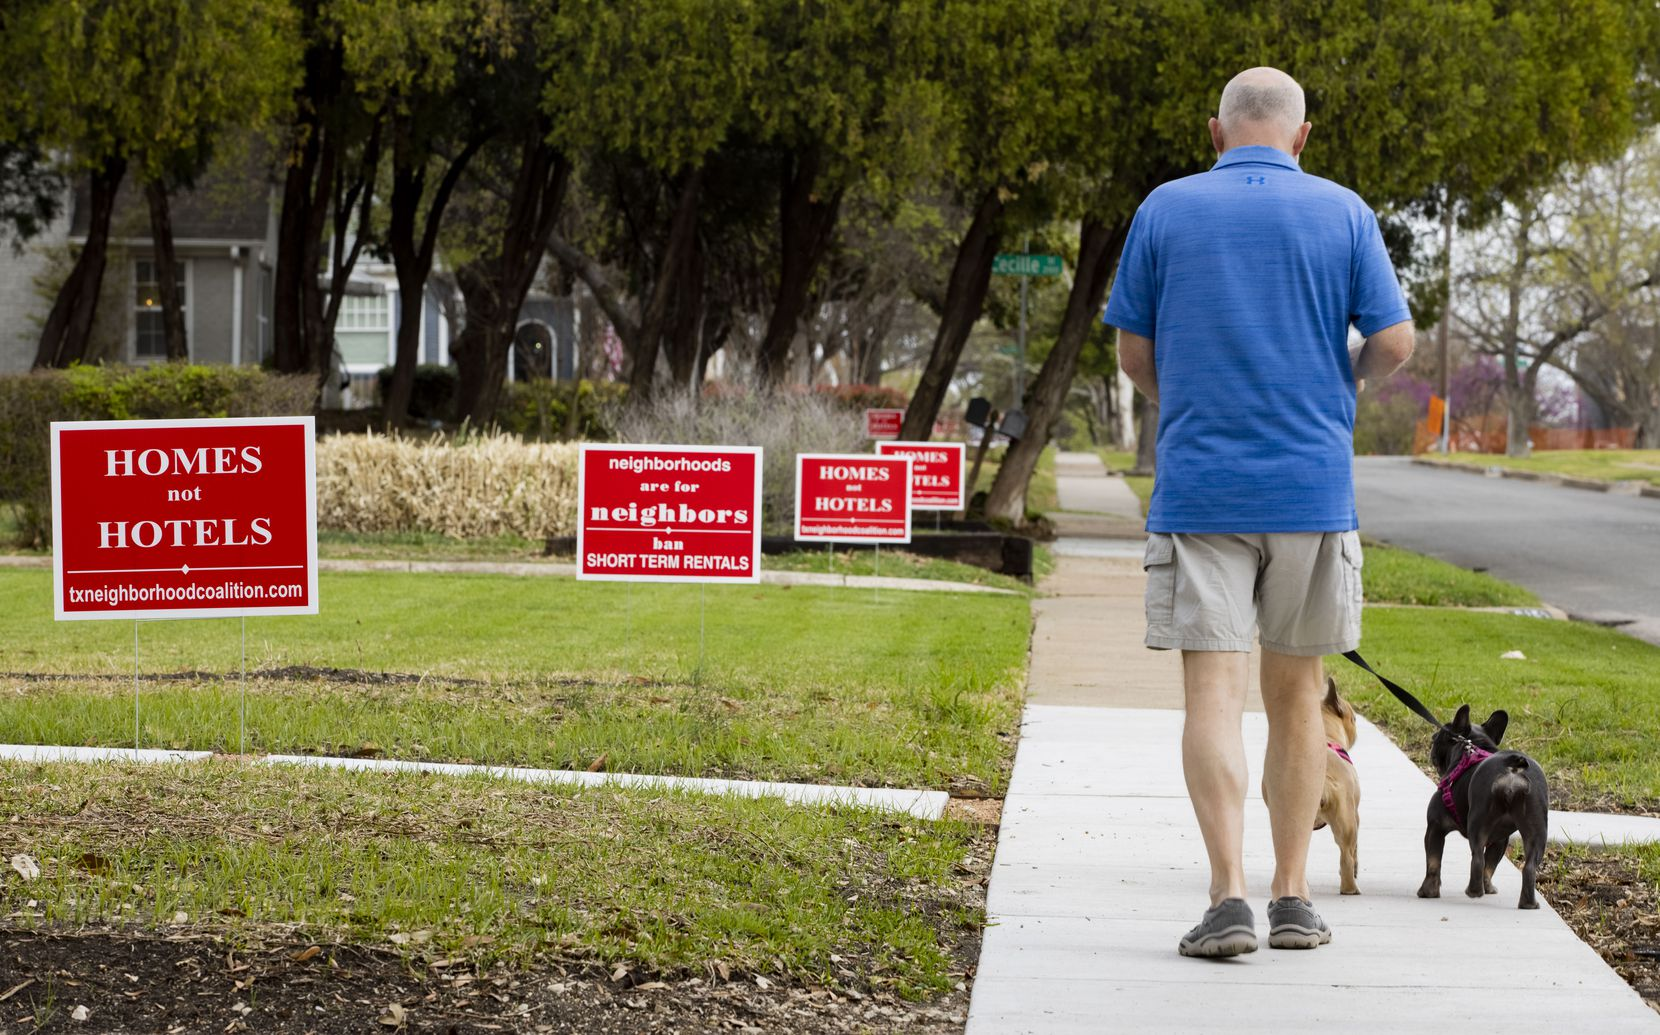 Dale Harwell walks his dogs Nellie and Sophie along Prospect Avenue in Dallas' Edgemont Park Conservation District on Wednesday. Harwell is one of the many homeowners who has signs in his front yard protesting short-term rental properties in his neighborhood.